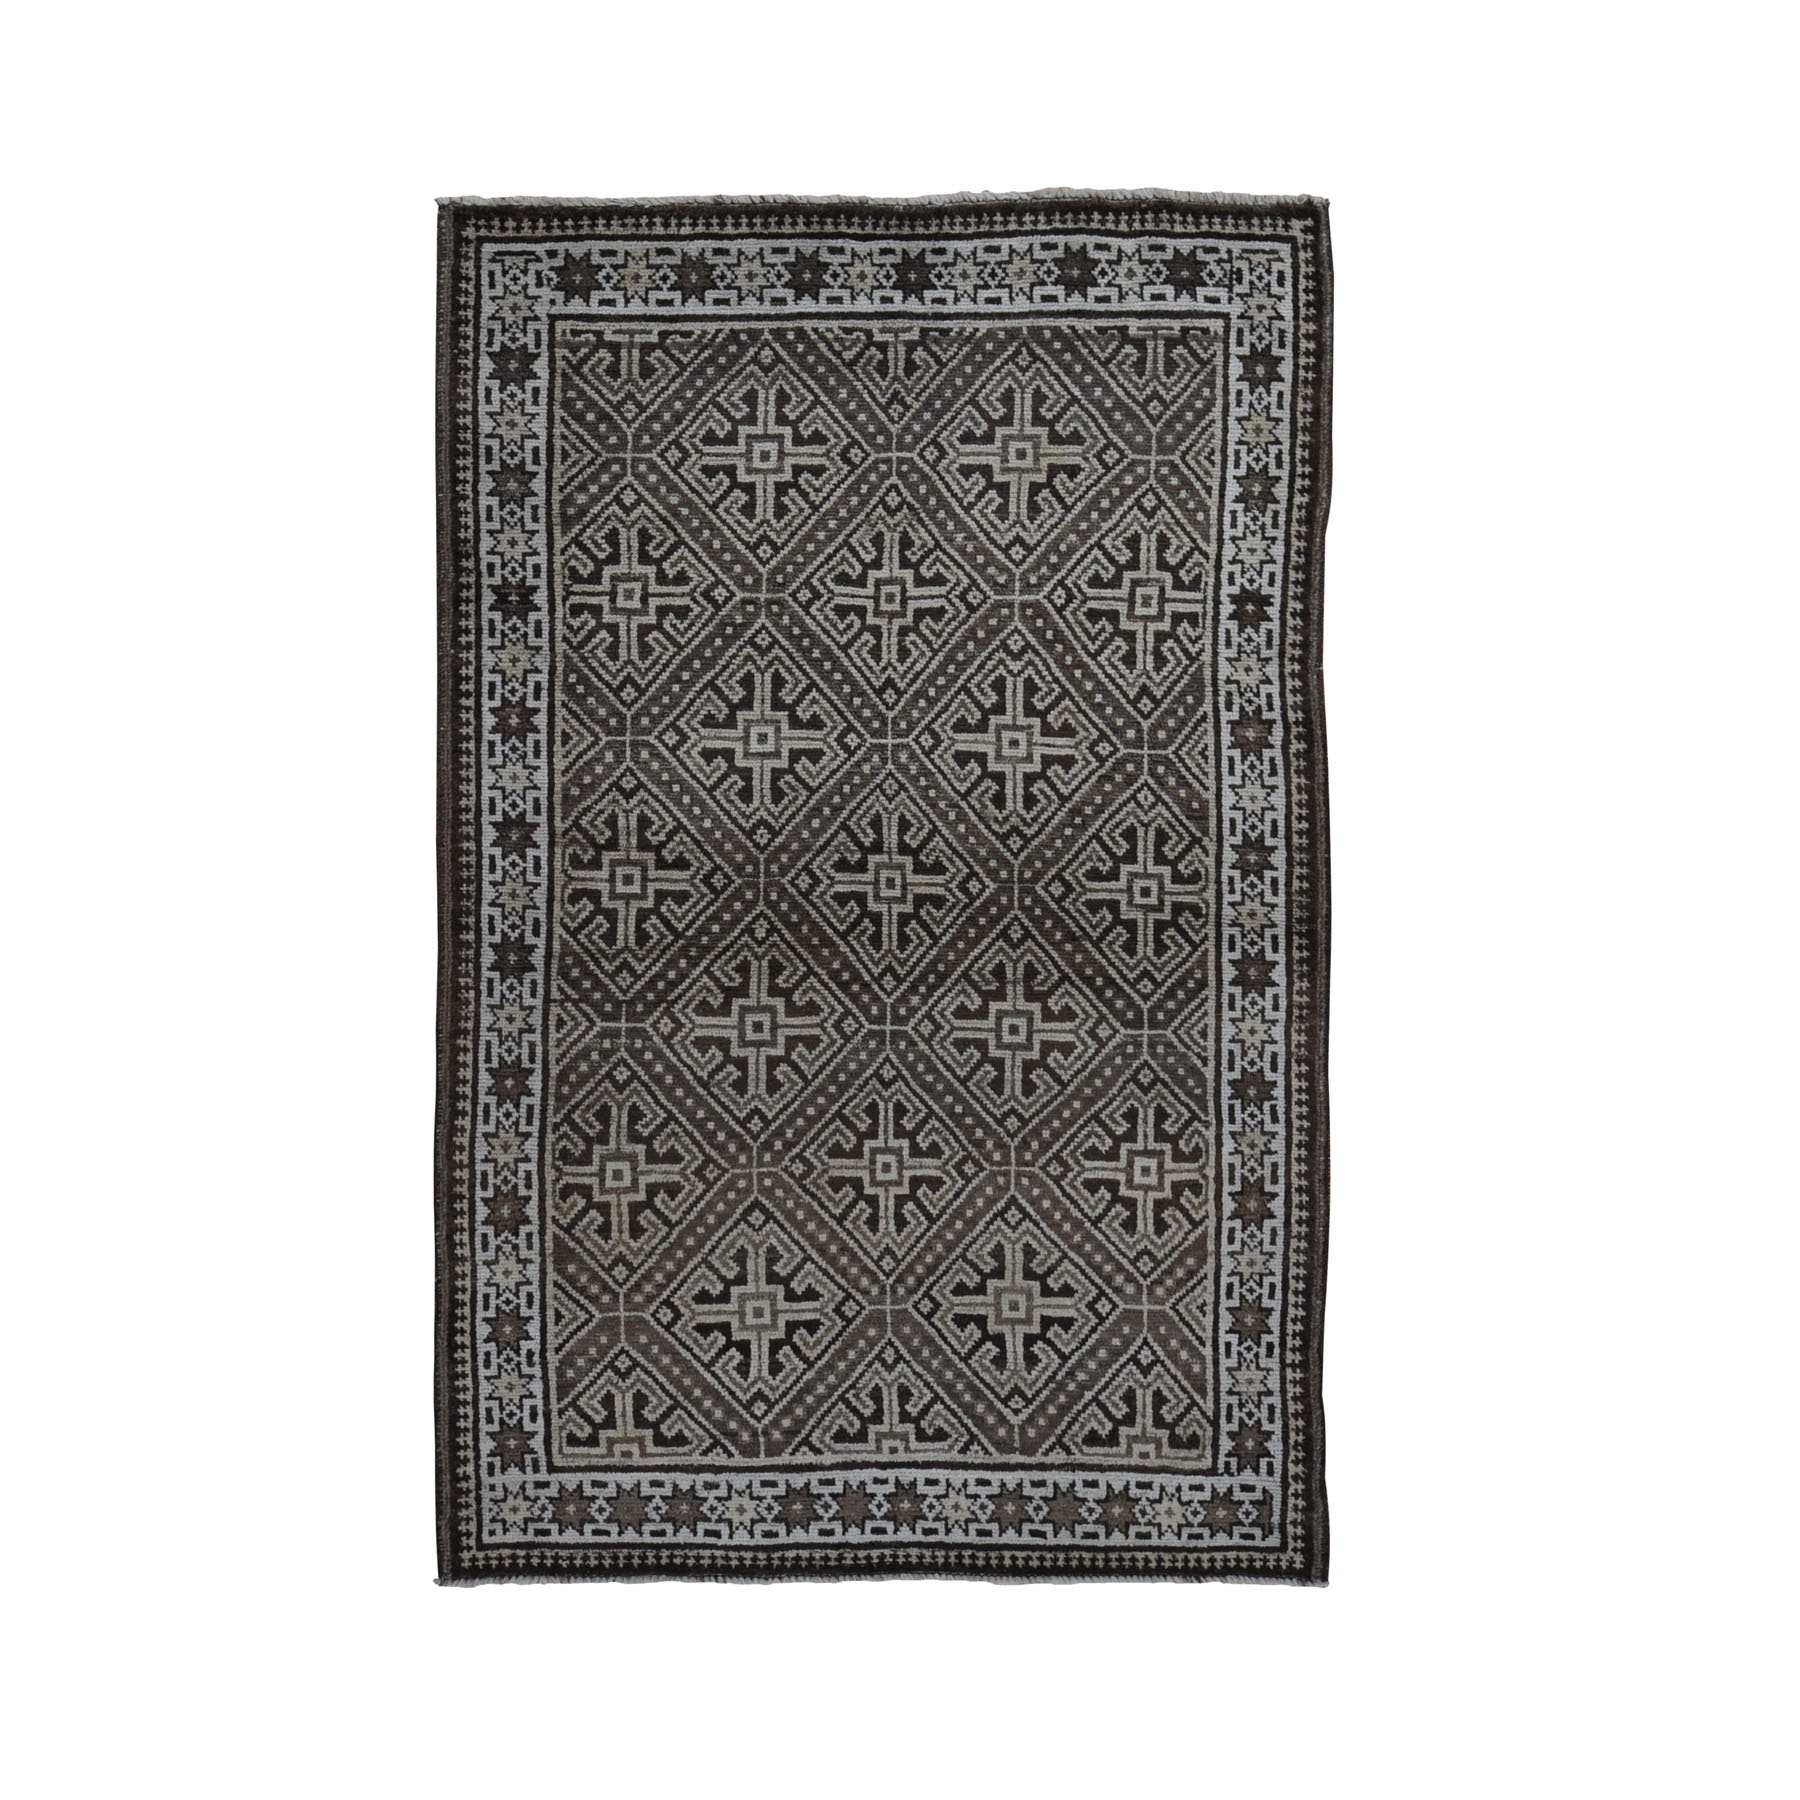 Nomadic And Village Collection Hand Knotted Brown Rug No: 0199330